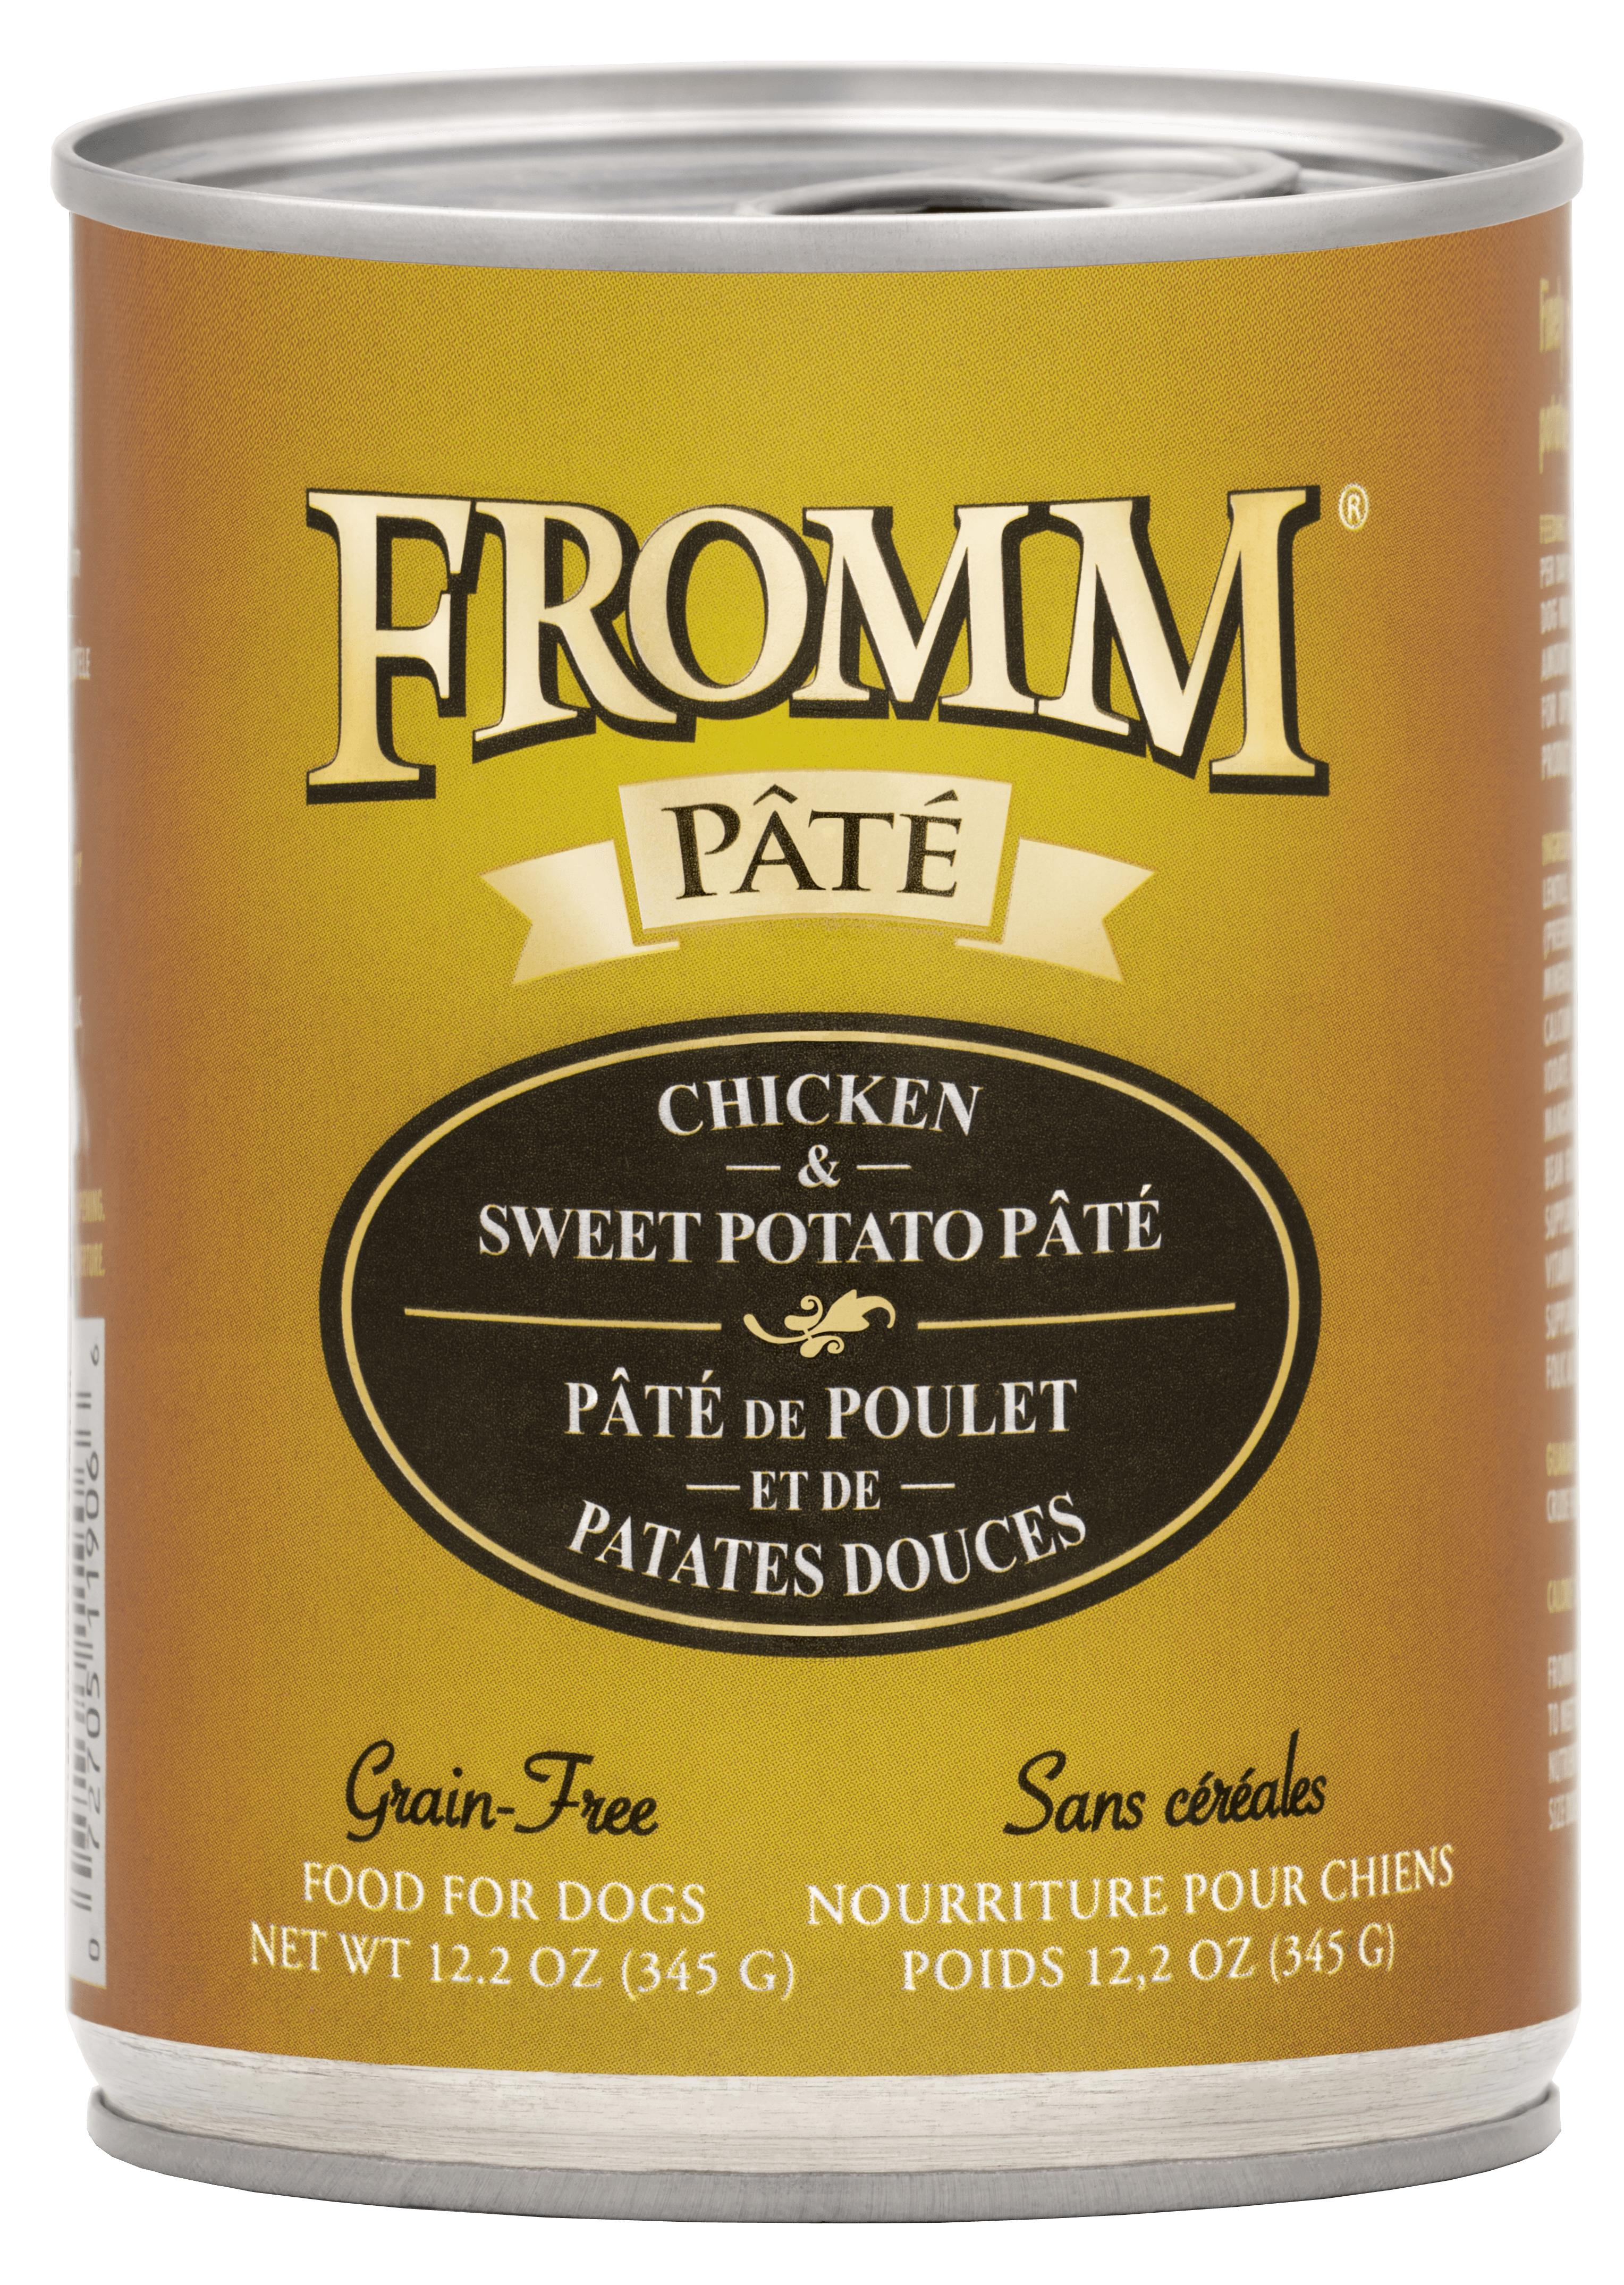 Fromm Chicken & Sweet Potato Pate Canned Dog Food, 12.2-oz